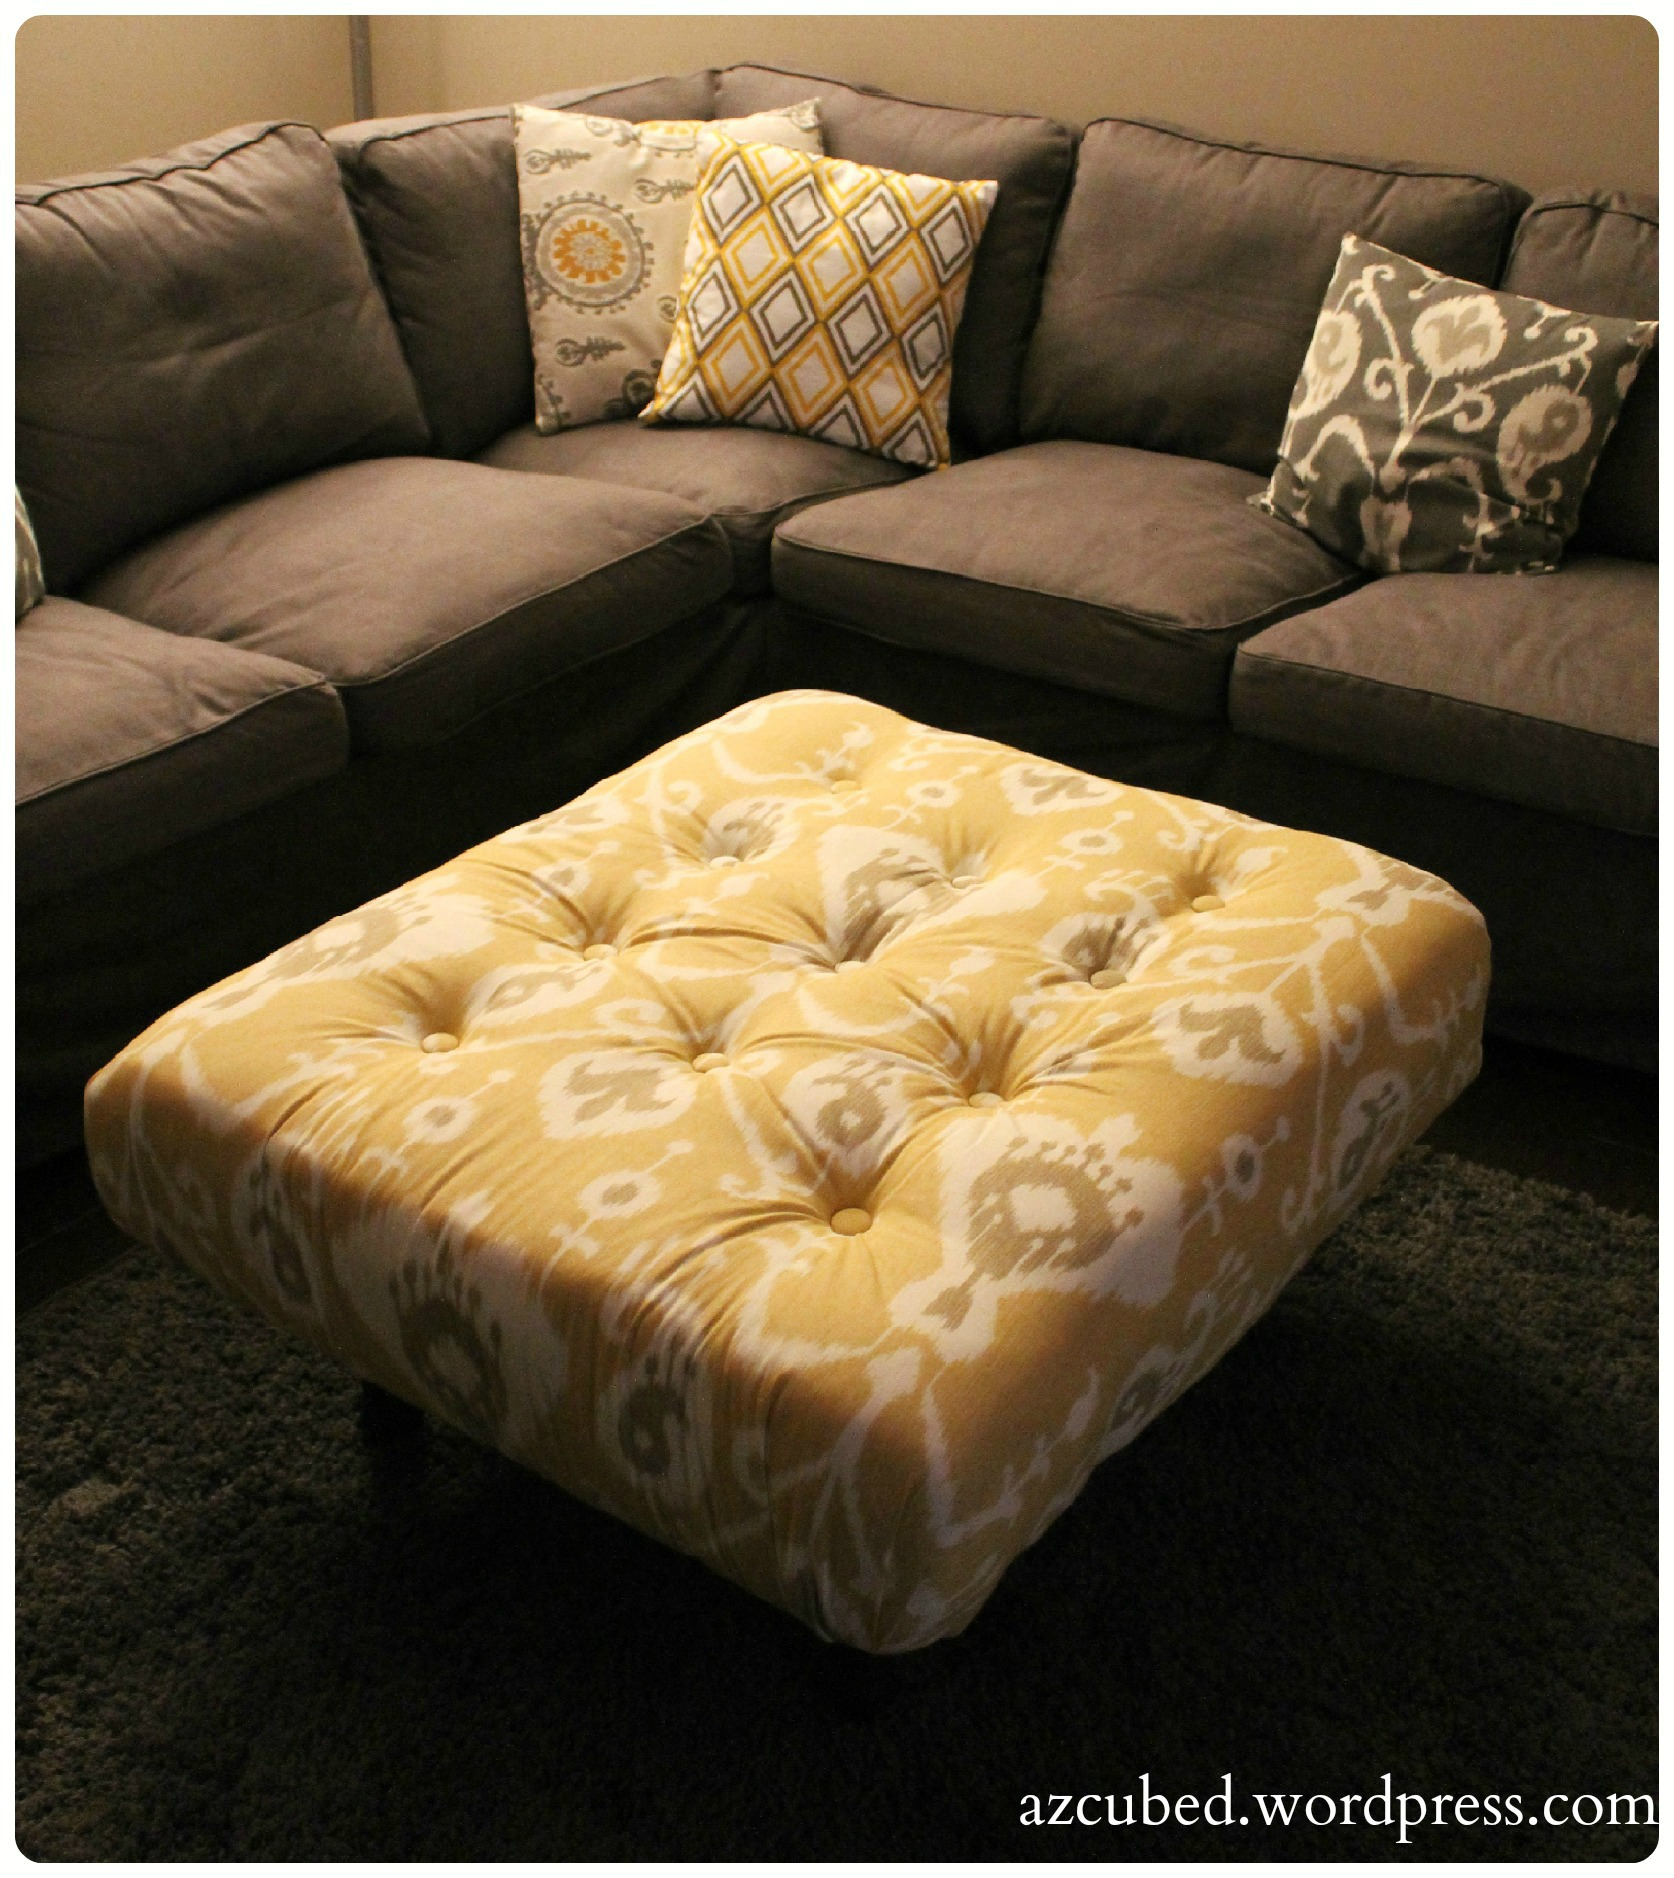 Magnificent Diy Tufted Ikat Ottoman From Upcycled Pallet With Tutorial Machost Co Dining Chair Design Ideas Machostcouk